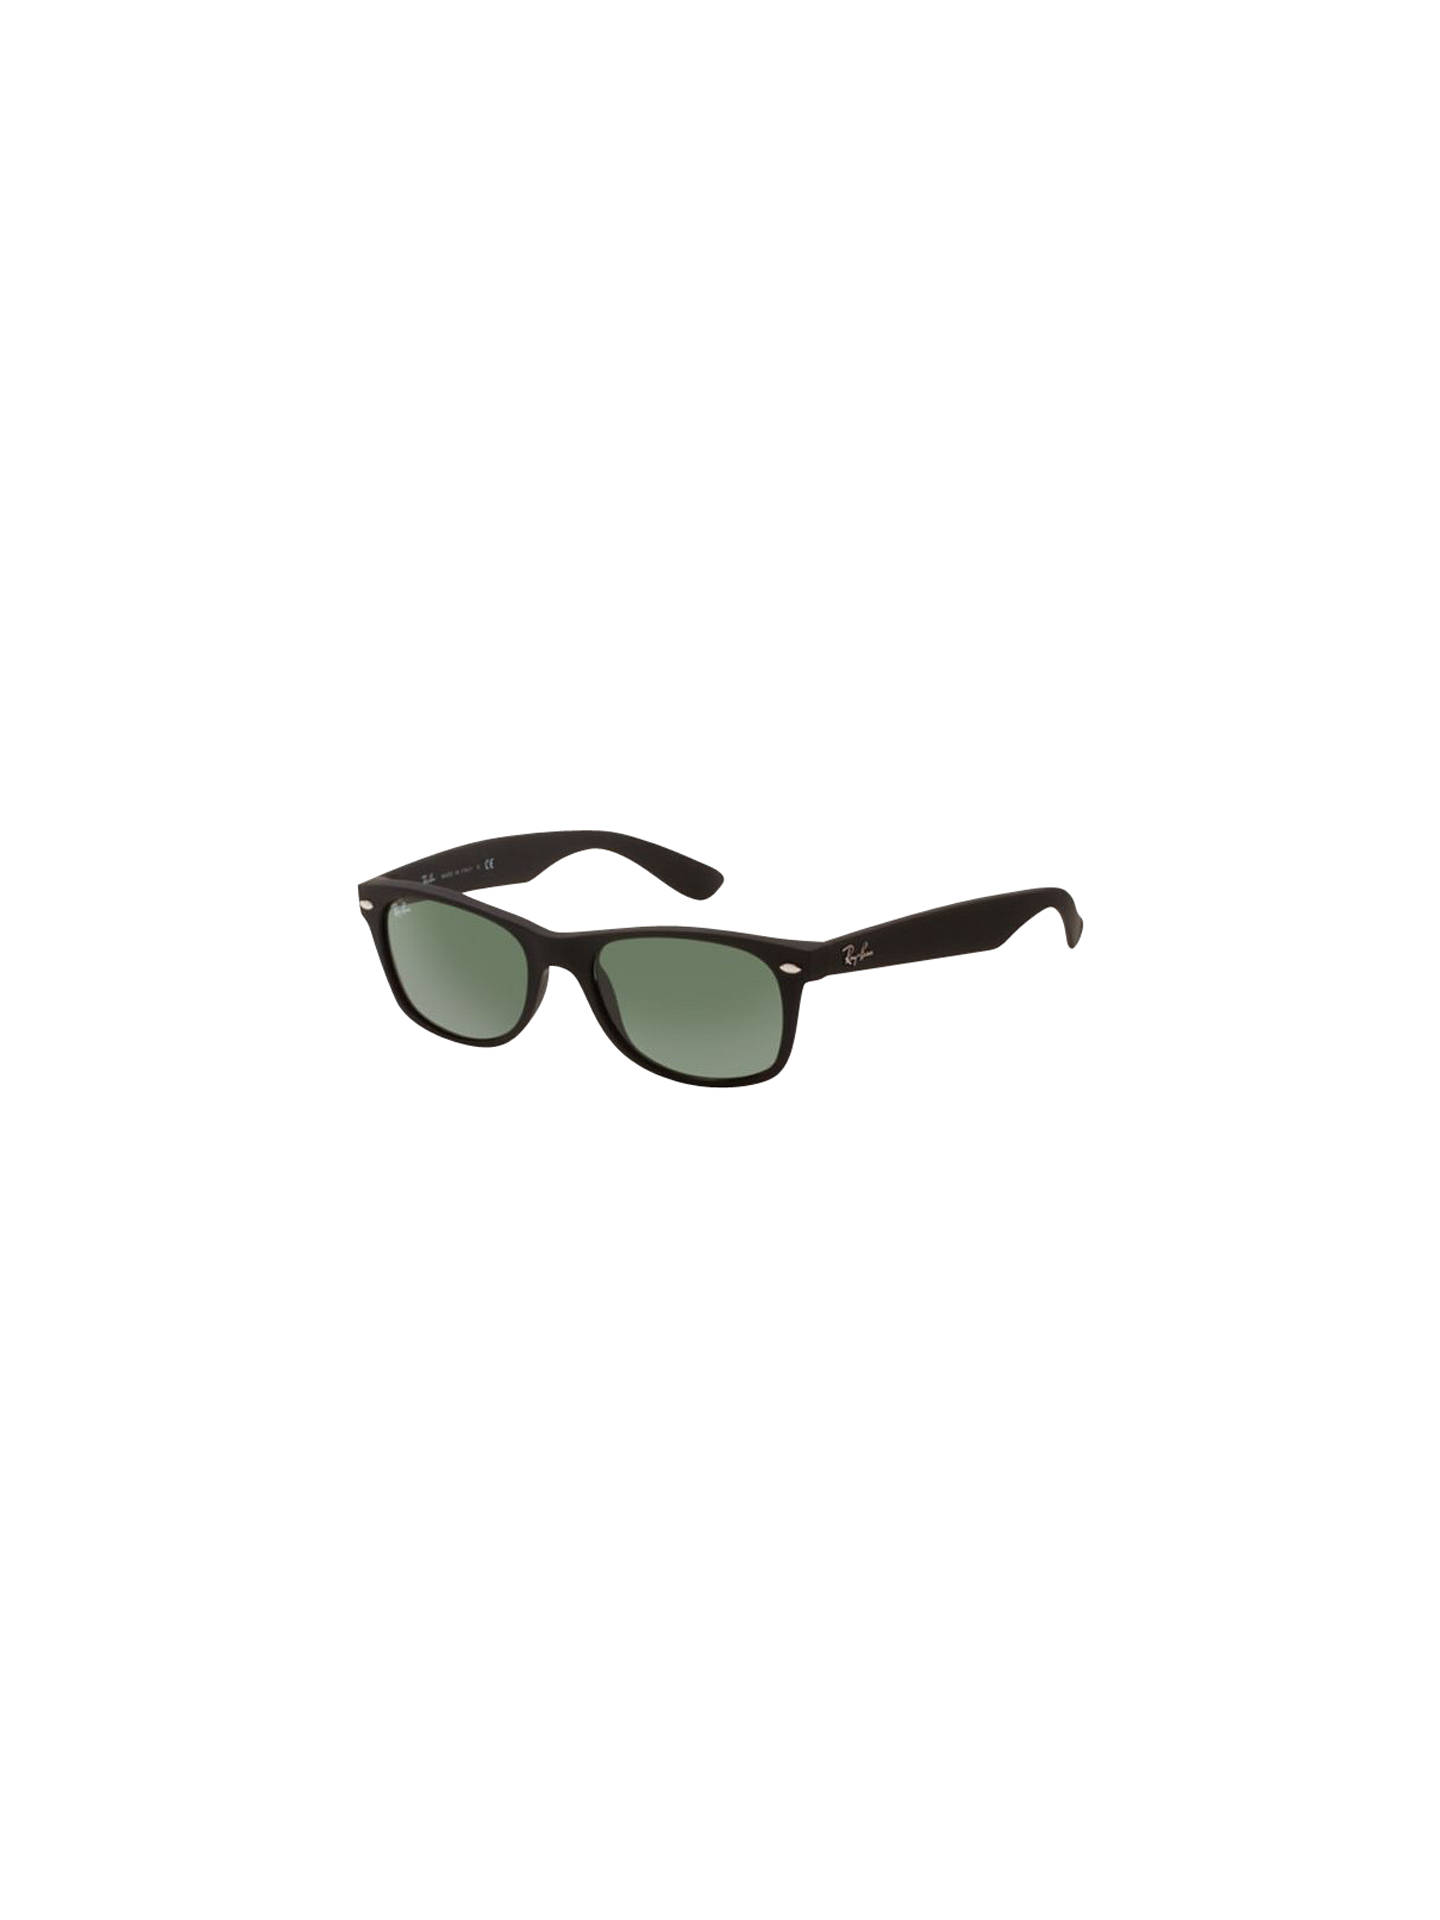 88dadd860c660 Buy Ray-Ban RB2132 New Wayfarer Sunglasses